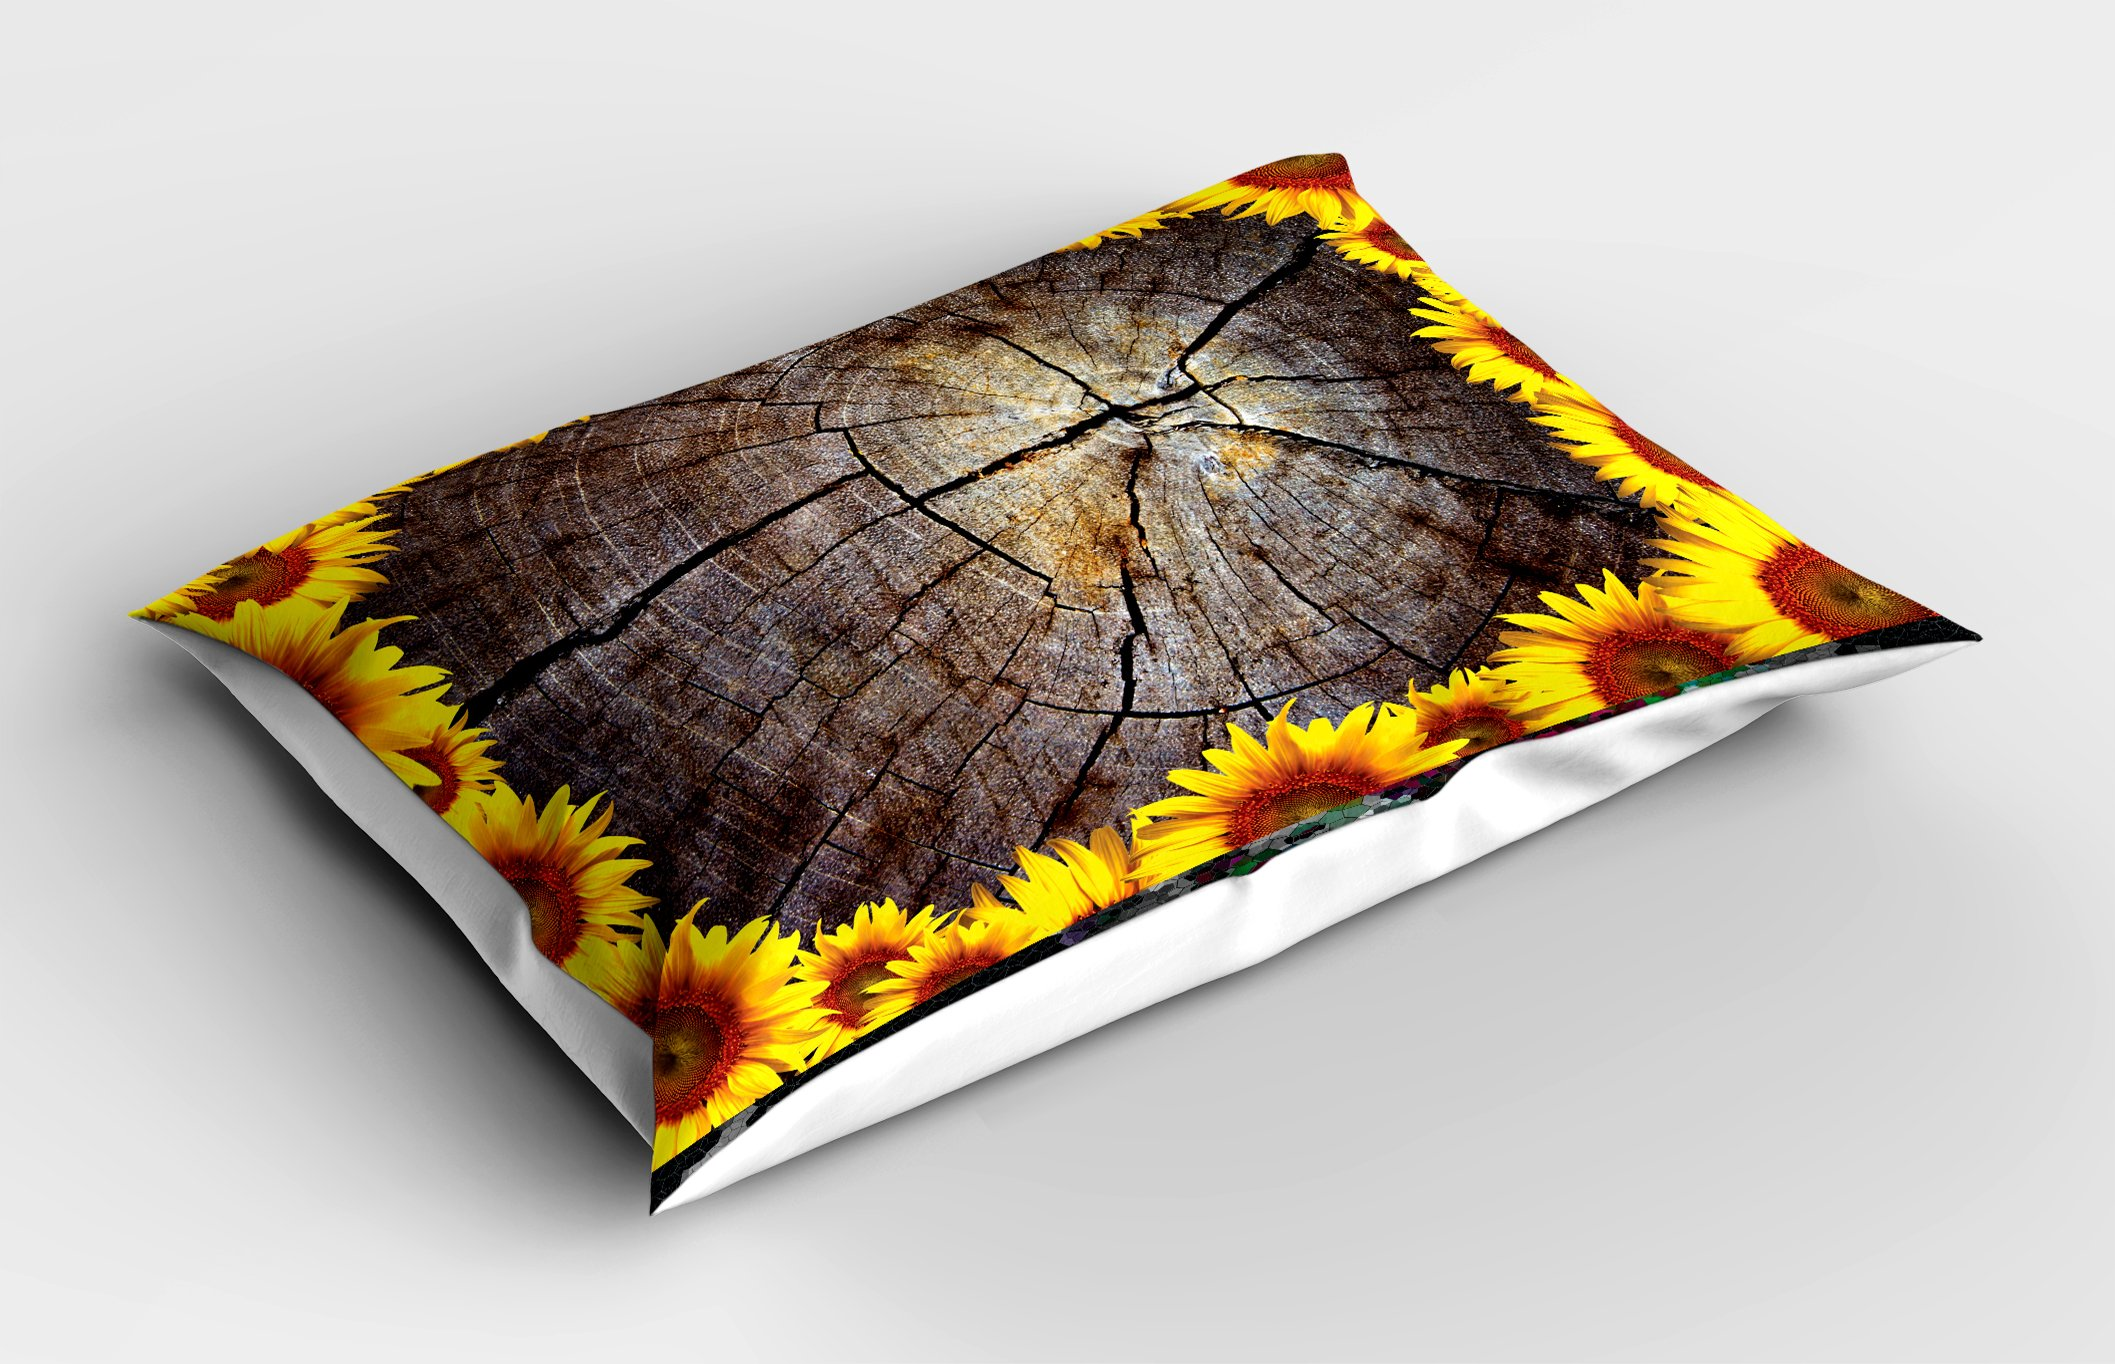 Lunarable Sunflower Pillow Sham, Cut Section Wood Stump with Sunflowers Seeds Tree Trunk Rustic Ornamental, Decorative Standard King Size Printed Pillowcase, 36 X 20 inches, Seal Brown Yellow by Lunarable (Image #2)